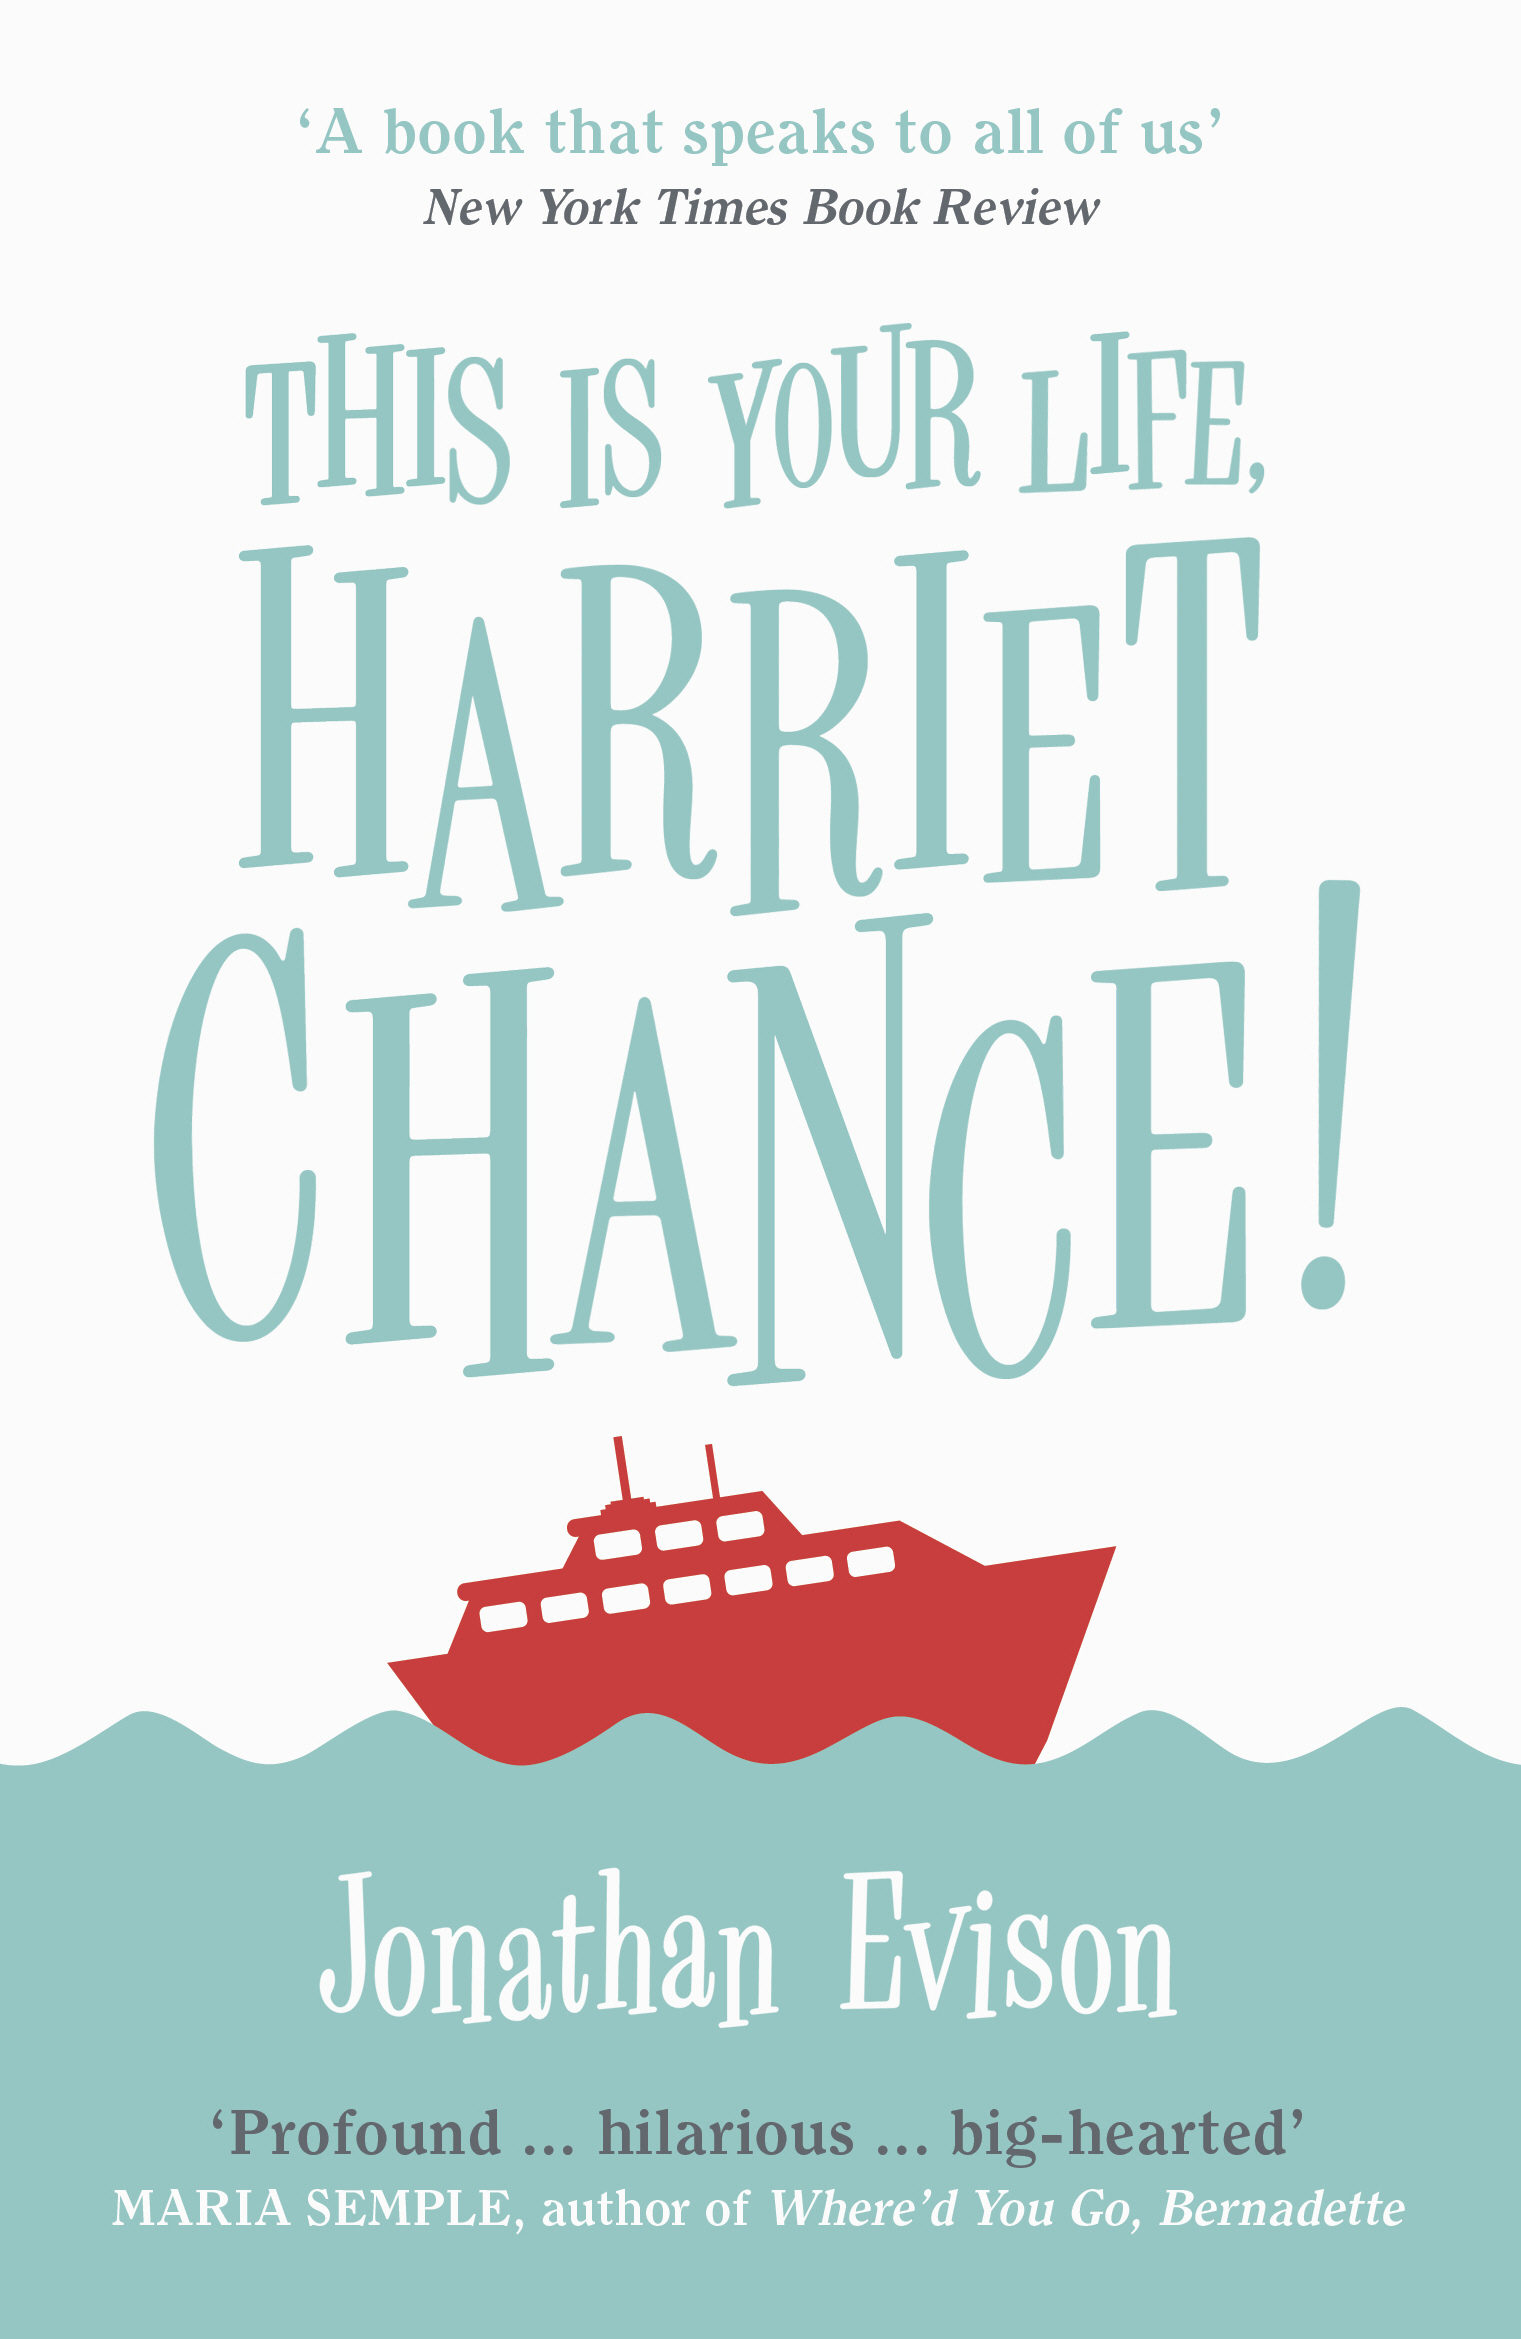 This Is Your Life, Harriet Chance! (ebook)jonathan Evison9781473535510